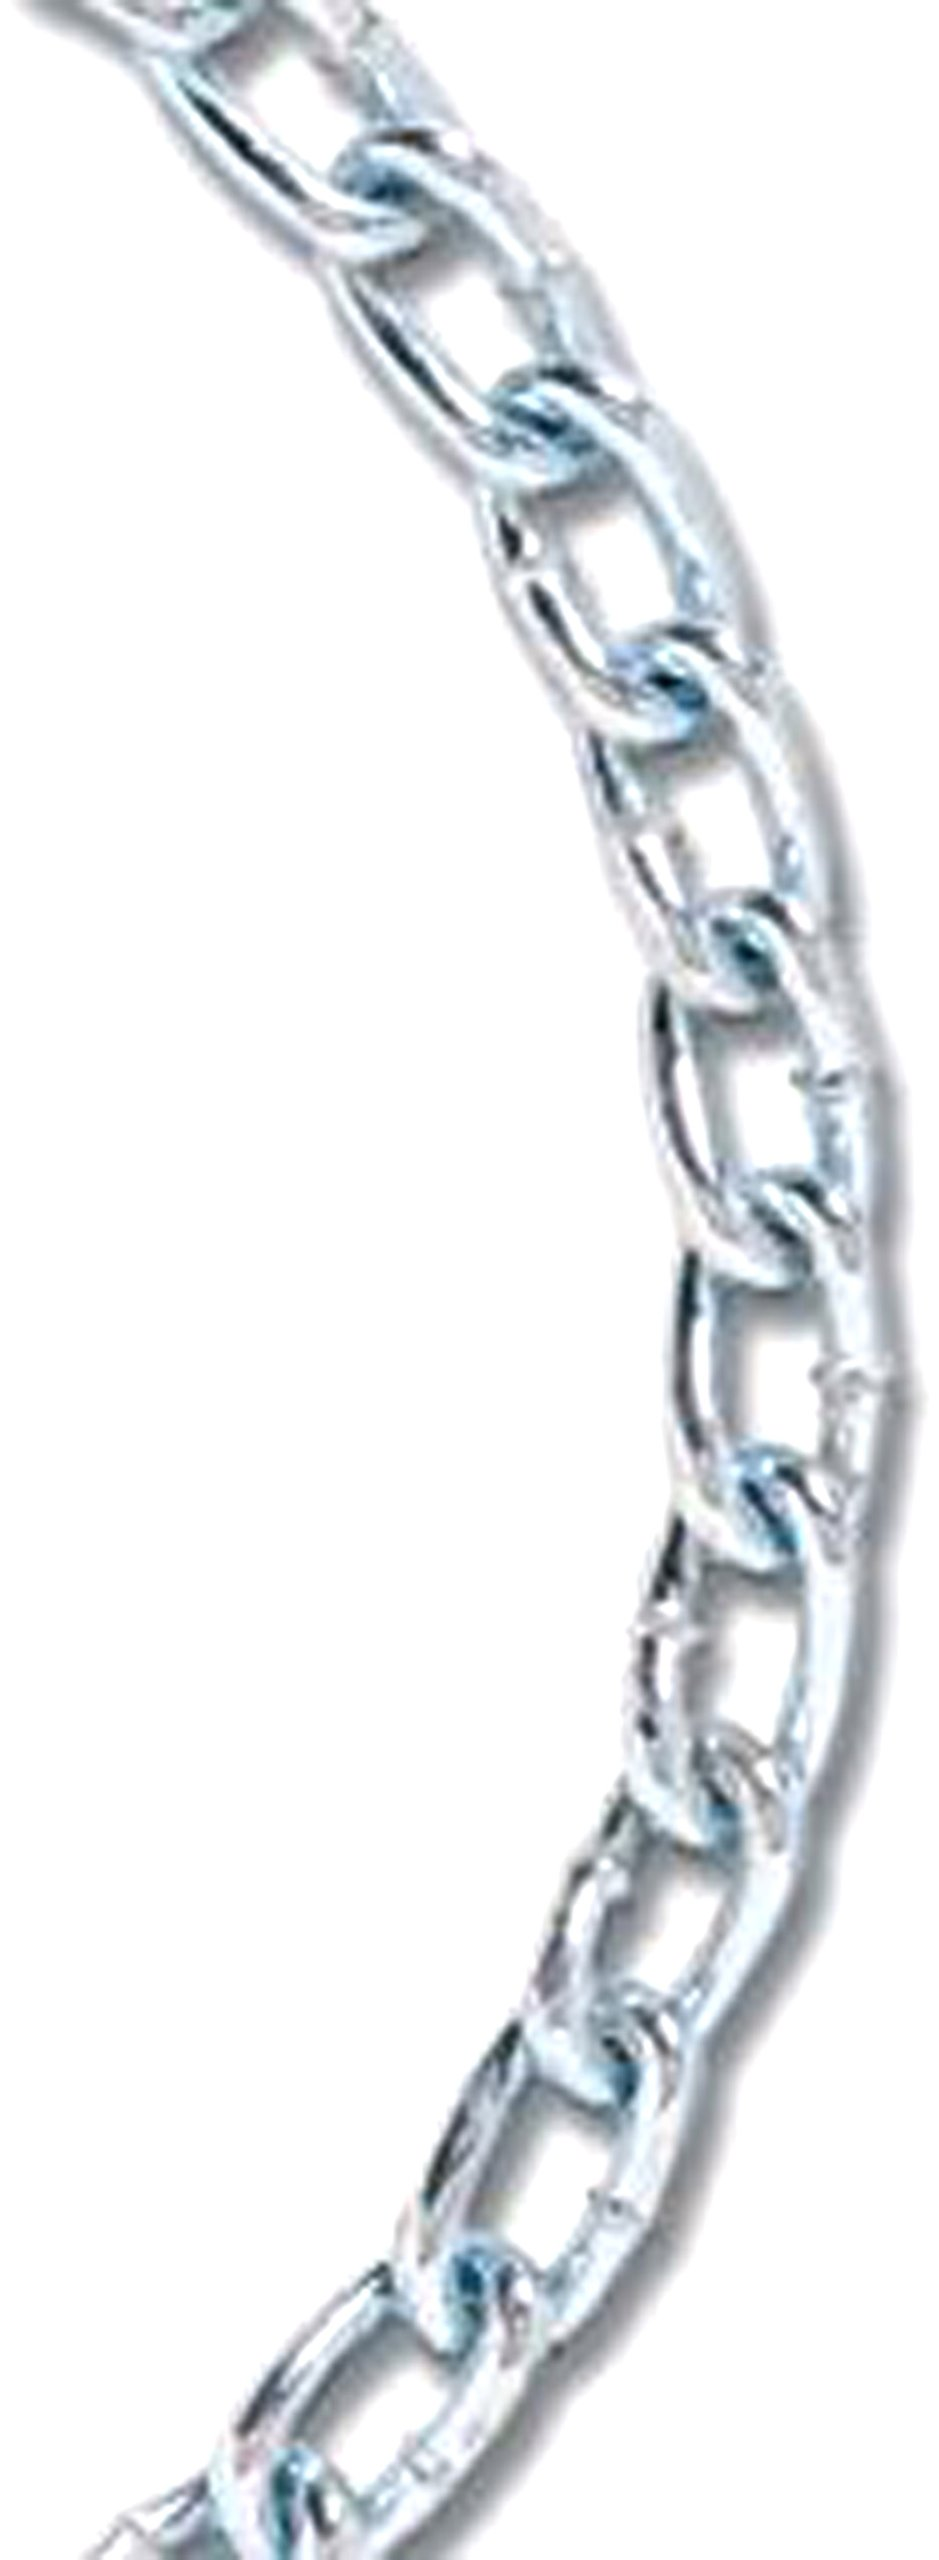 Koch 717876 No.4 by 200-Feet Machine Twist Chain, Zinc Plated by Koch